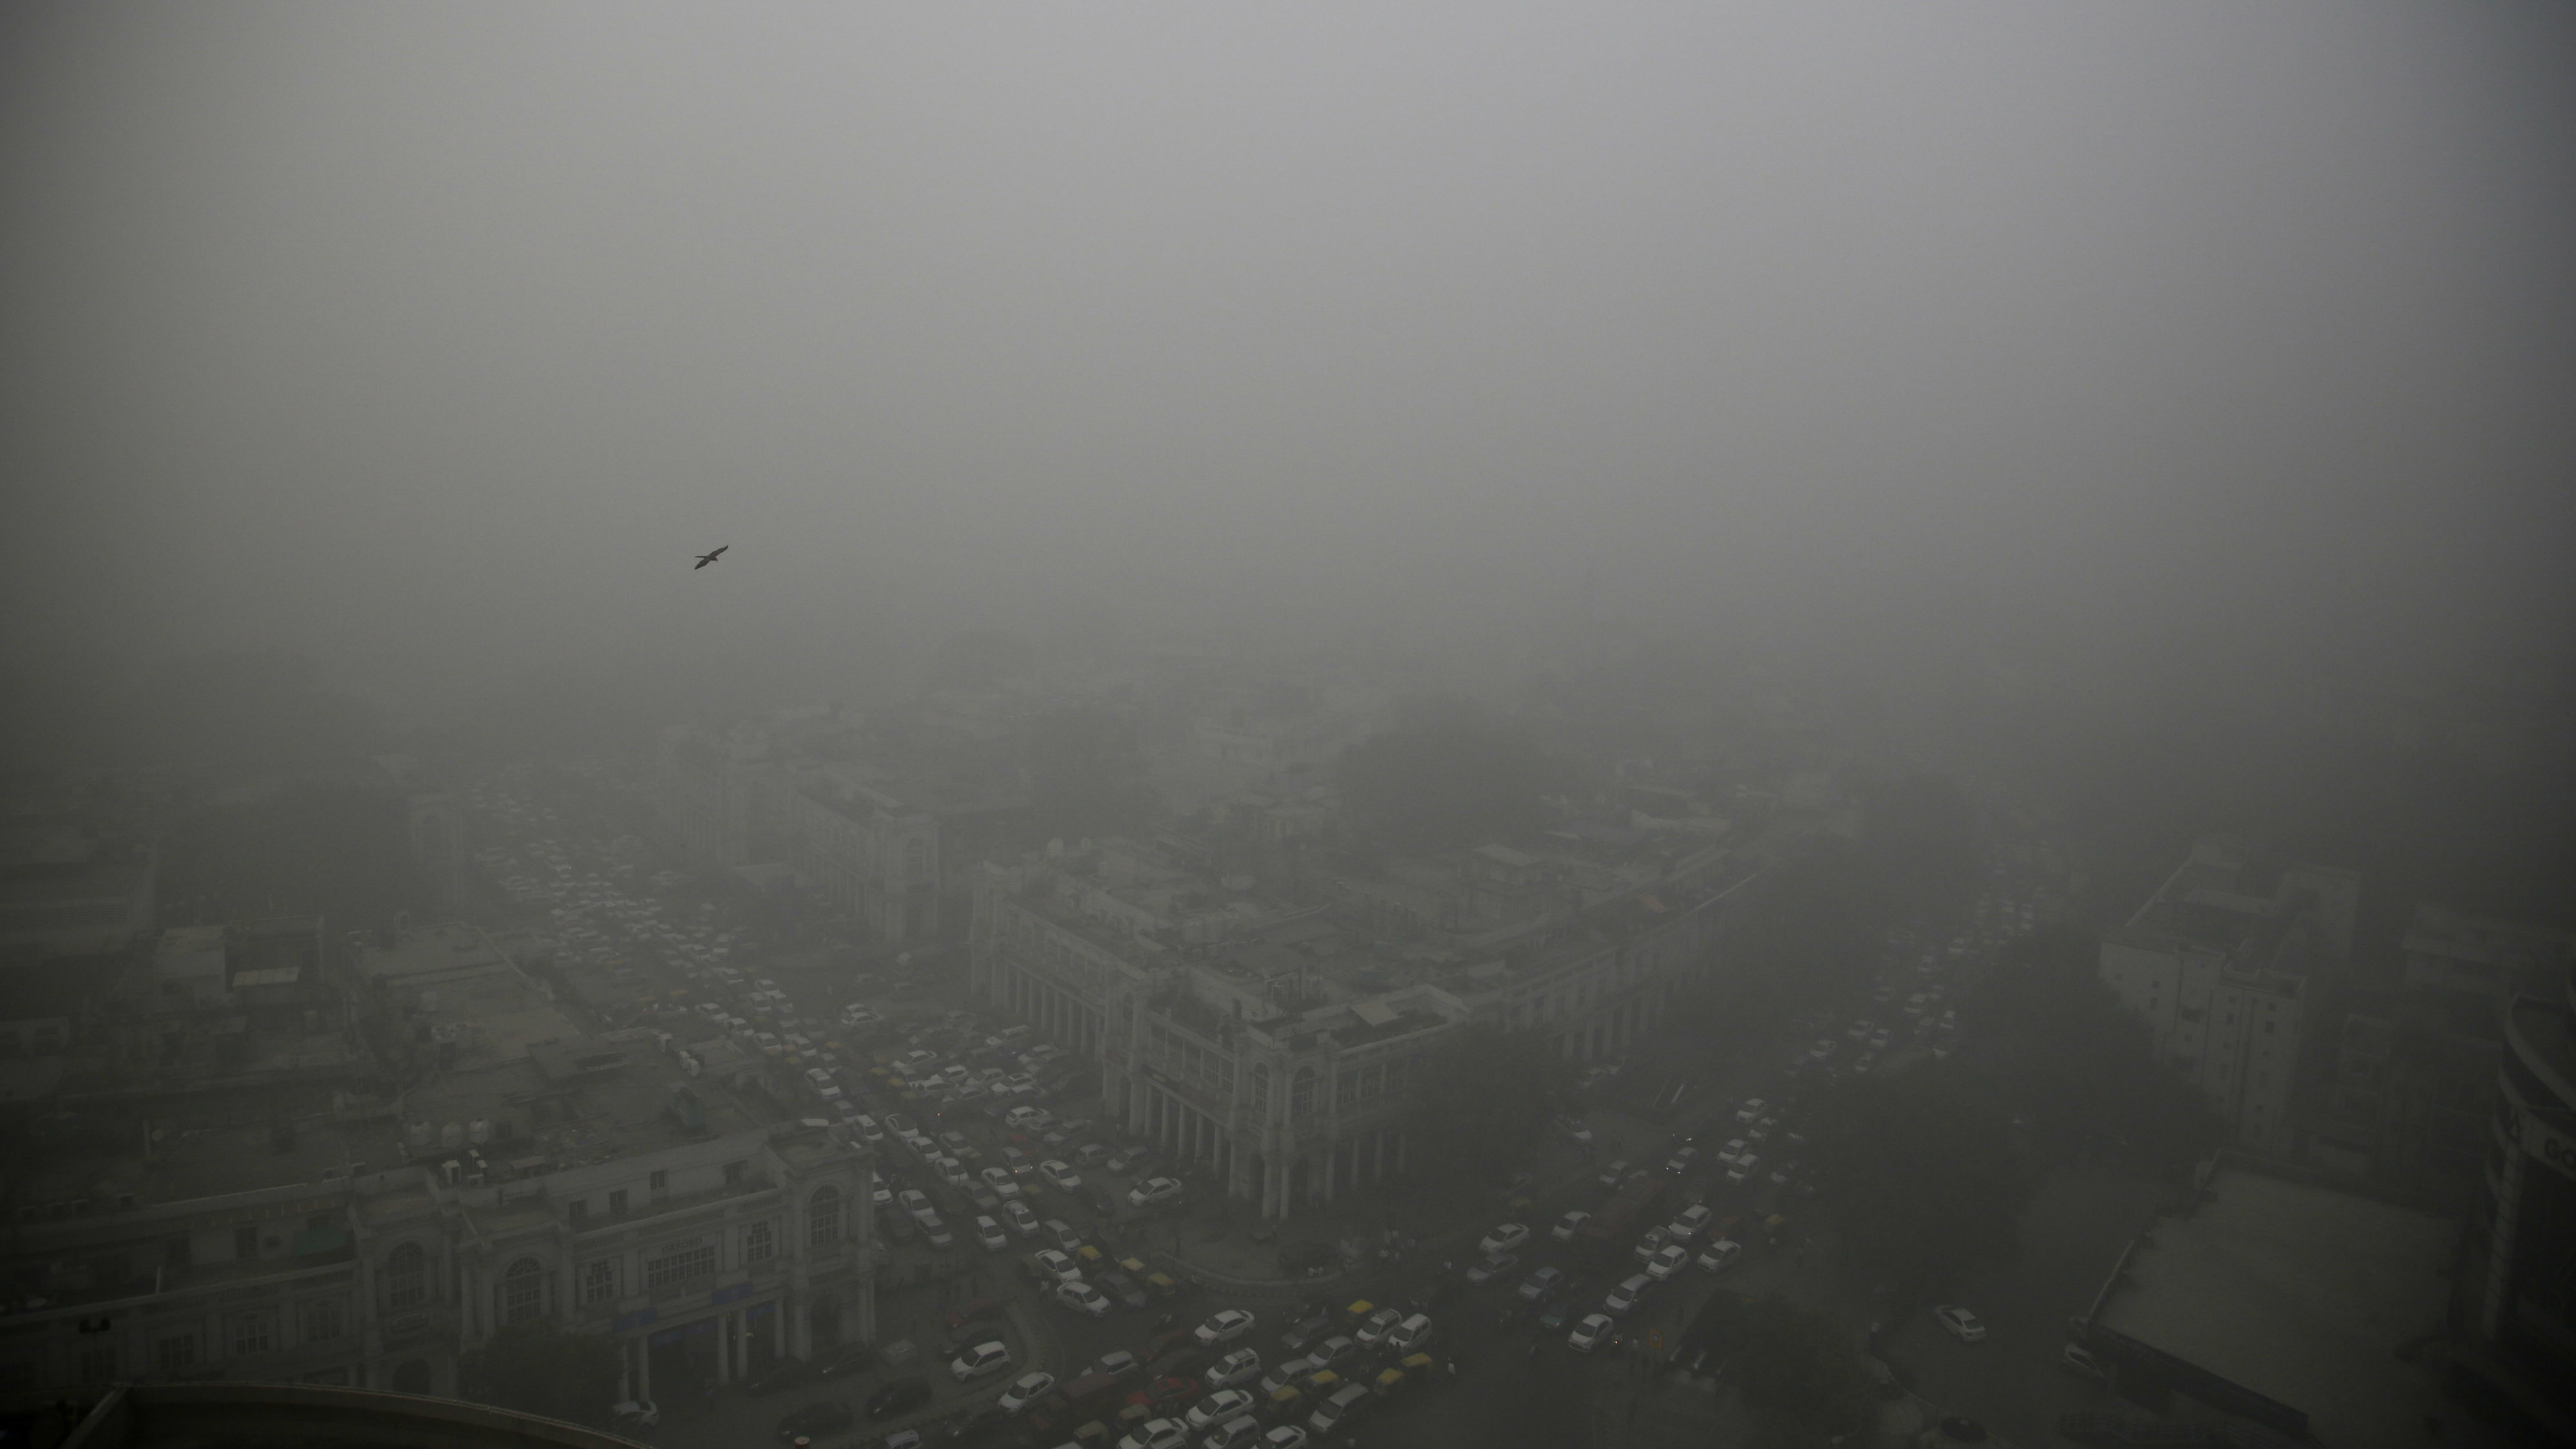 A thick layer of smog covers Connaught Place, the heart of New Delhi, India, on Saturday, Nov. 5, 2016. According to one advocacy group, government data shows that the smog that enveloped New Delhi the past week was the worst in the last 17 years. The concentration of PM2.5, a tiny particulate that can clog lungs, averaged close to 700 micrograms per cubic meter - 12 times the government norm and 70 times the WHO standards.